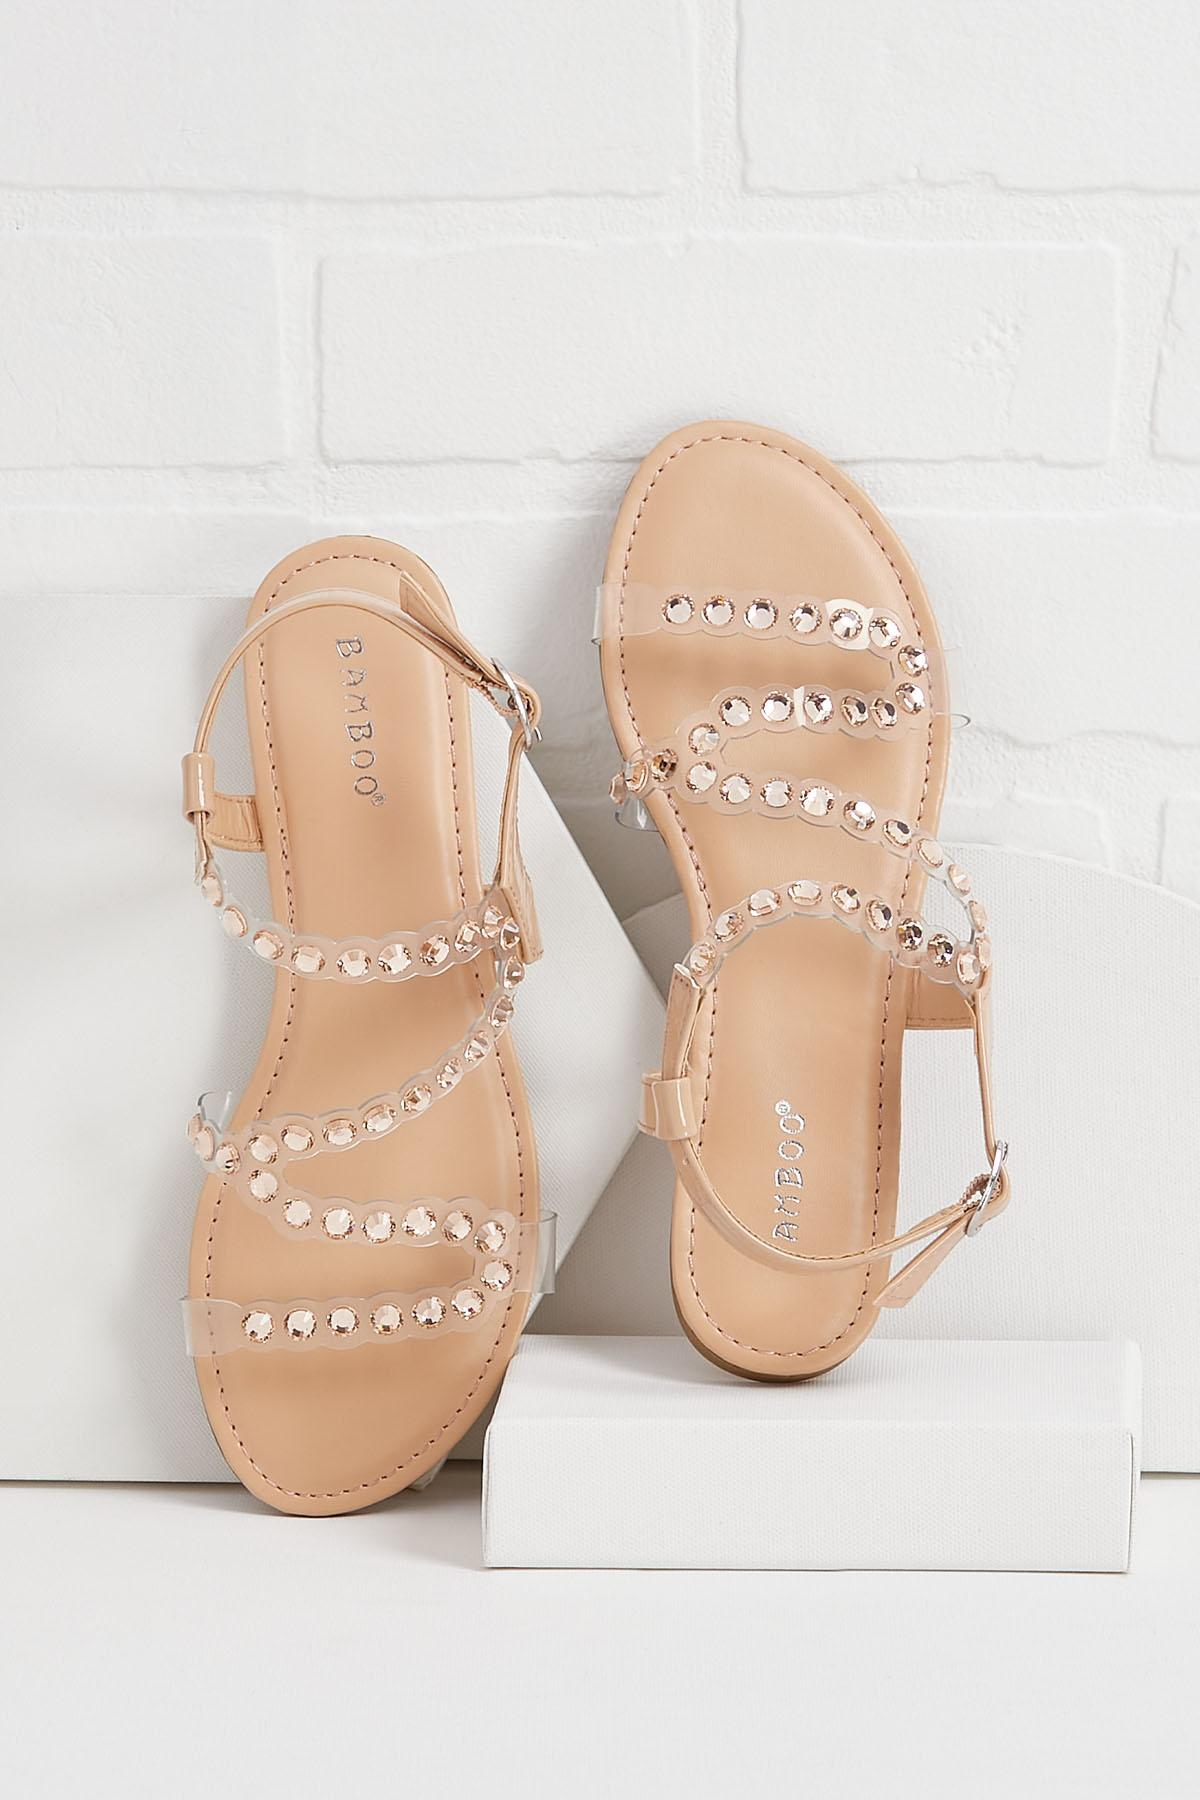 Glamping Sandals